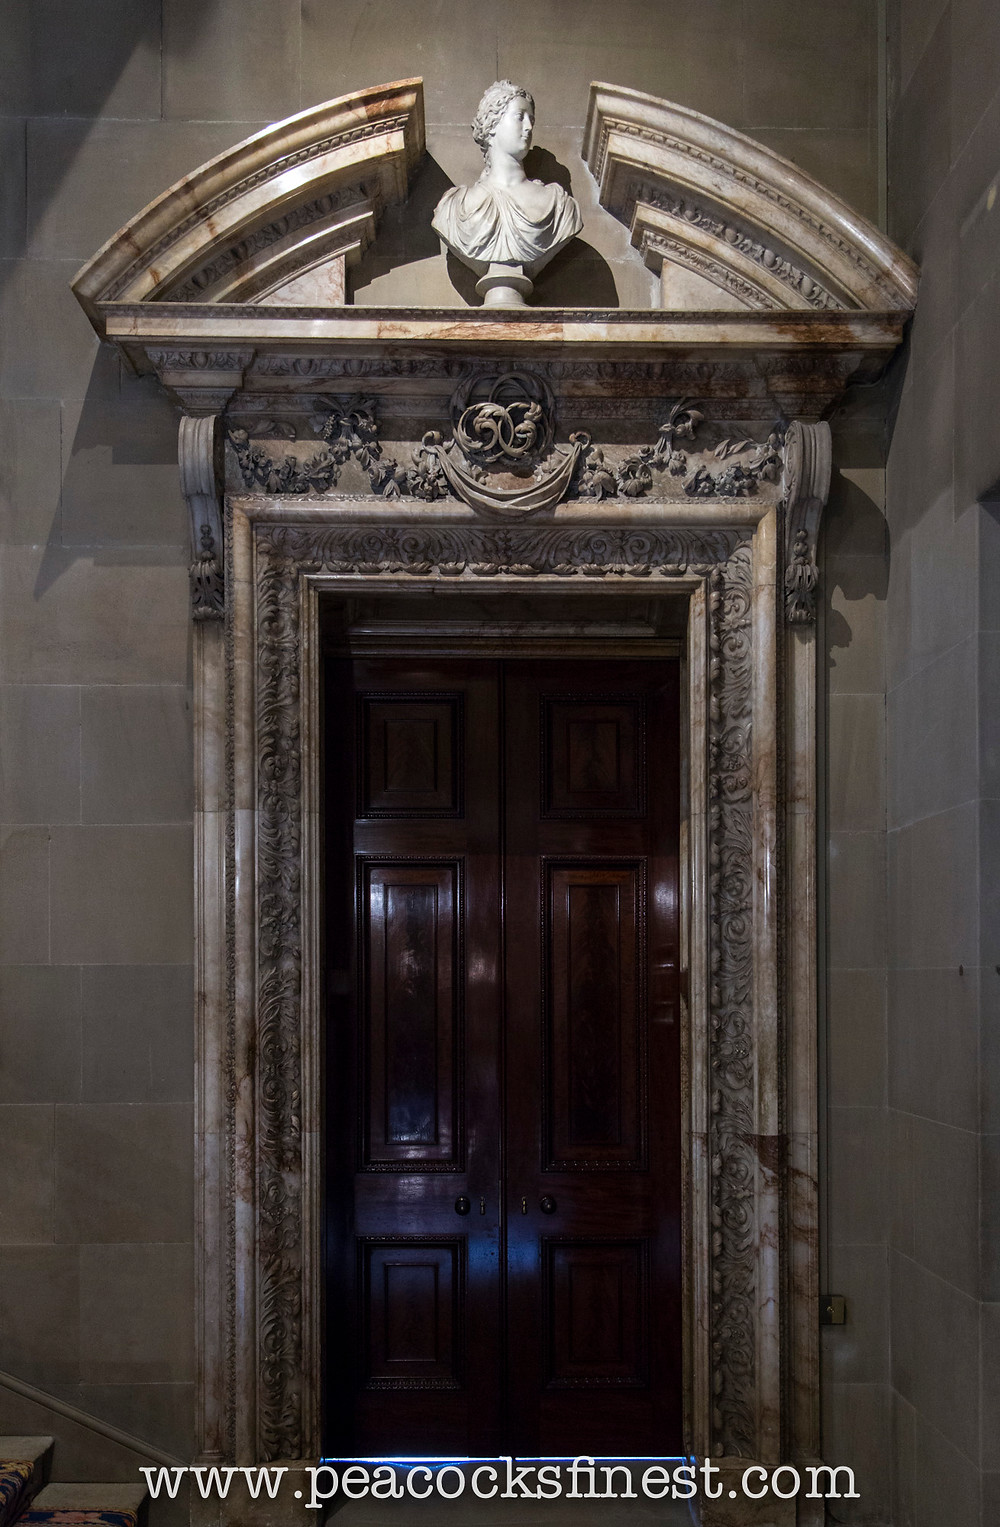 Carved marble baroque door surround at Chatsworth House